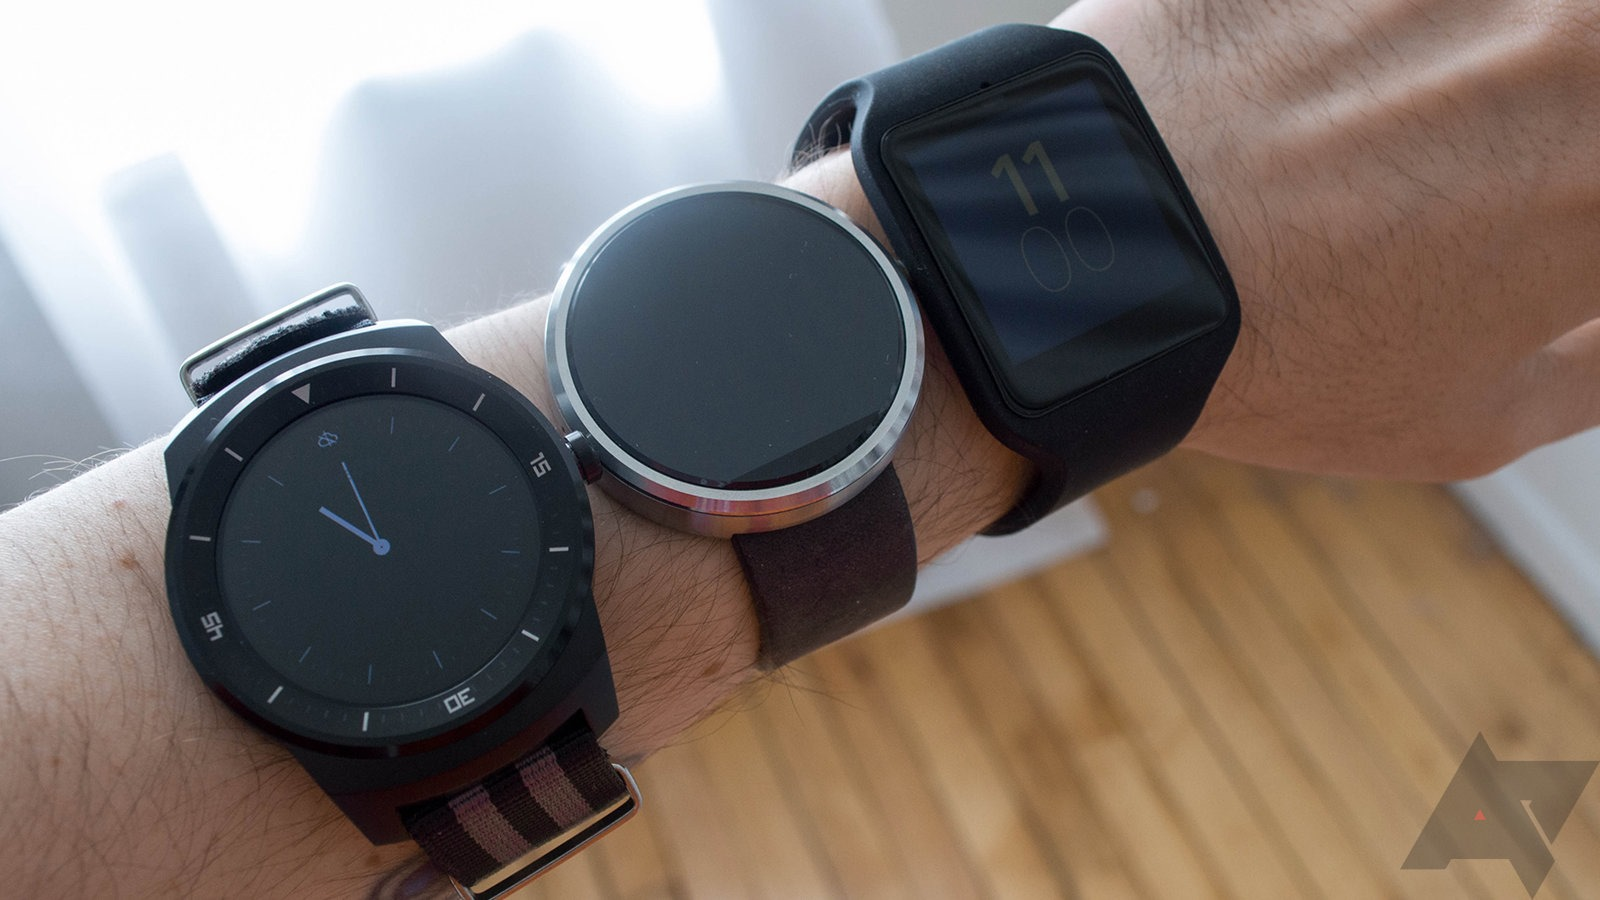 Plugged In Review >> Sony SmartWatch 3 Review: Excellent Battery Life, Acceptable Design